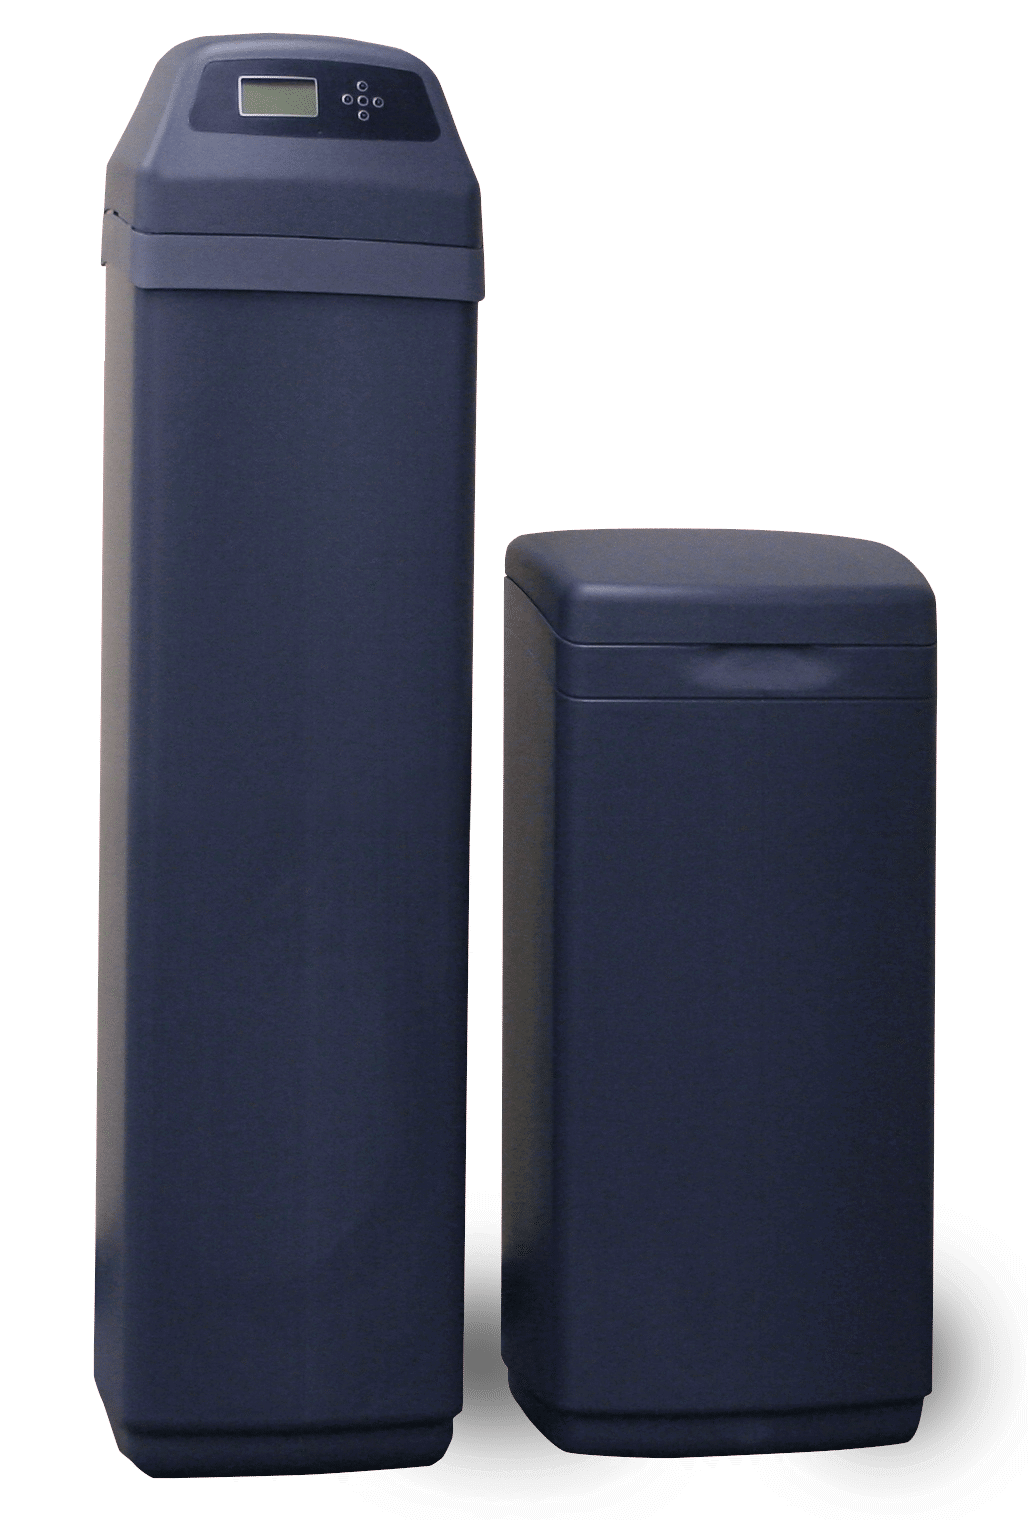 Water Softener Price Water Softeners And Water Conditioning Systems Angel Water Inc